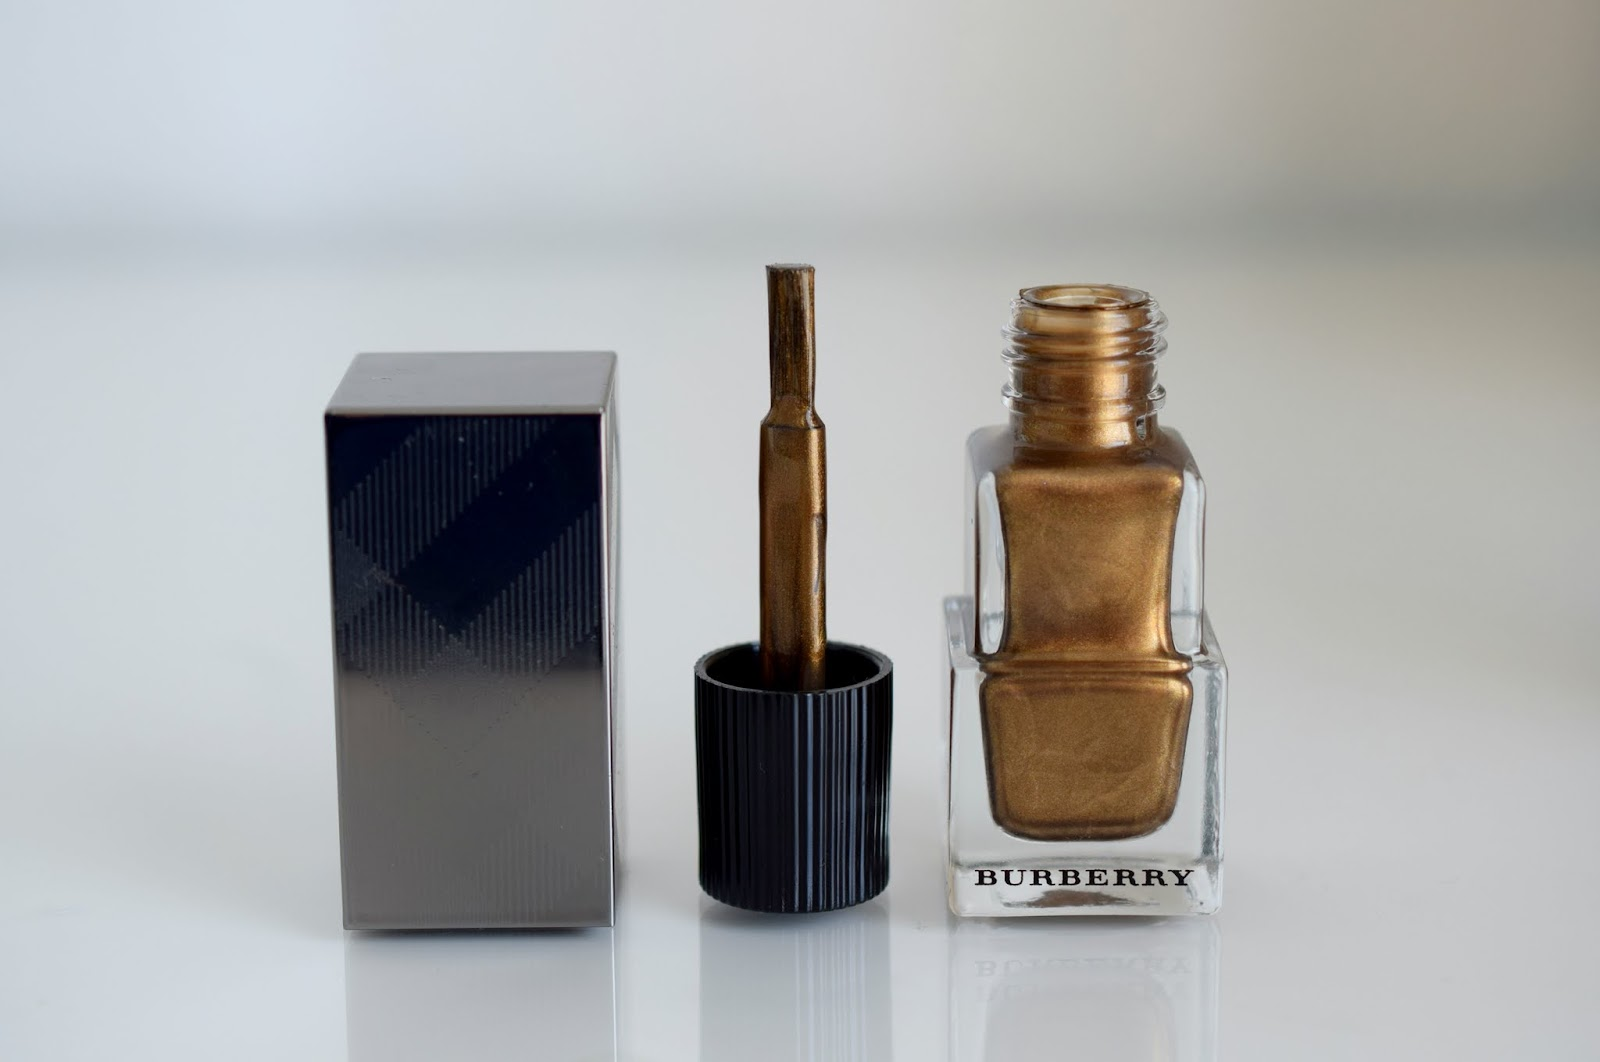 Burberry Nail Polish Antique Gold 445